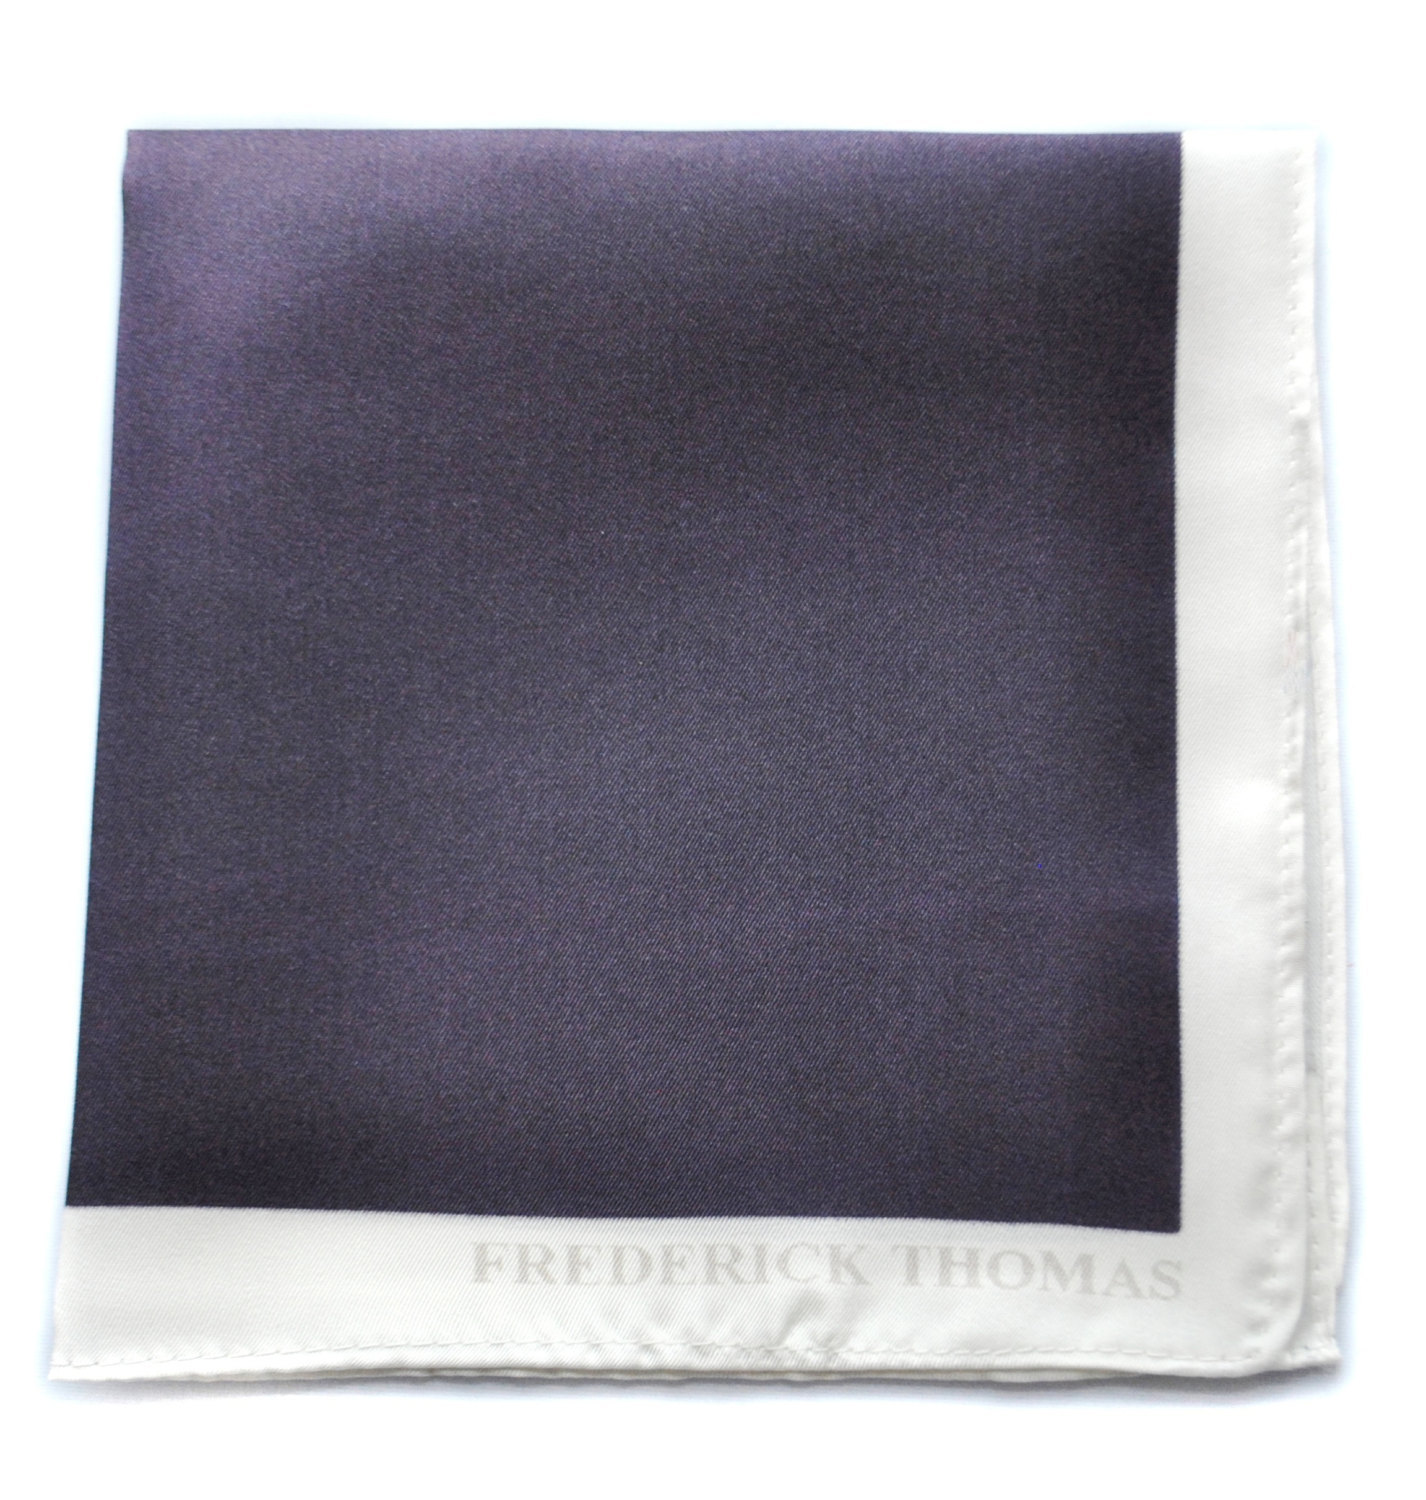 Frederick Thomas dark purple pocket square with white edging FT1654